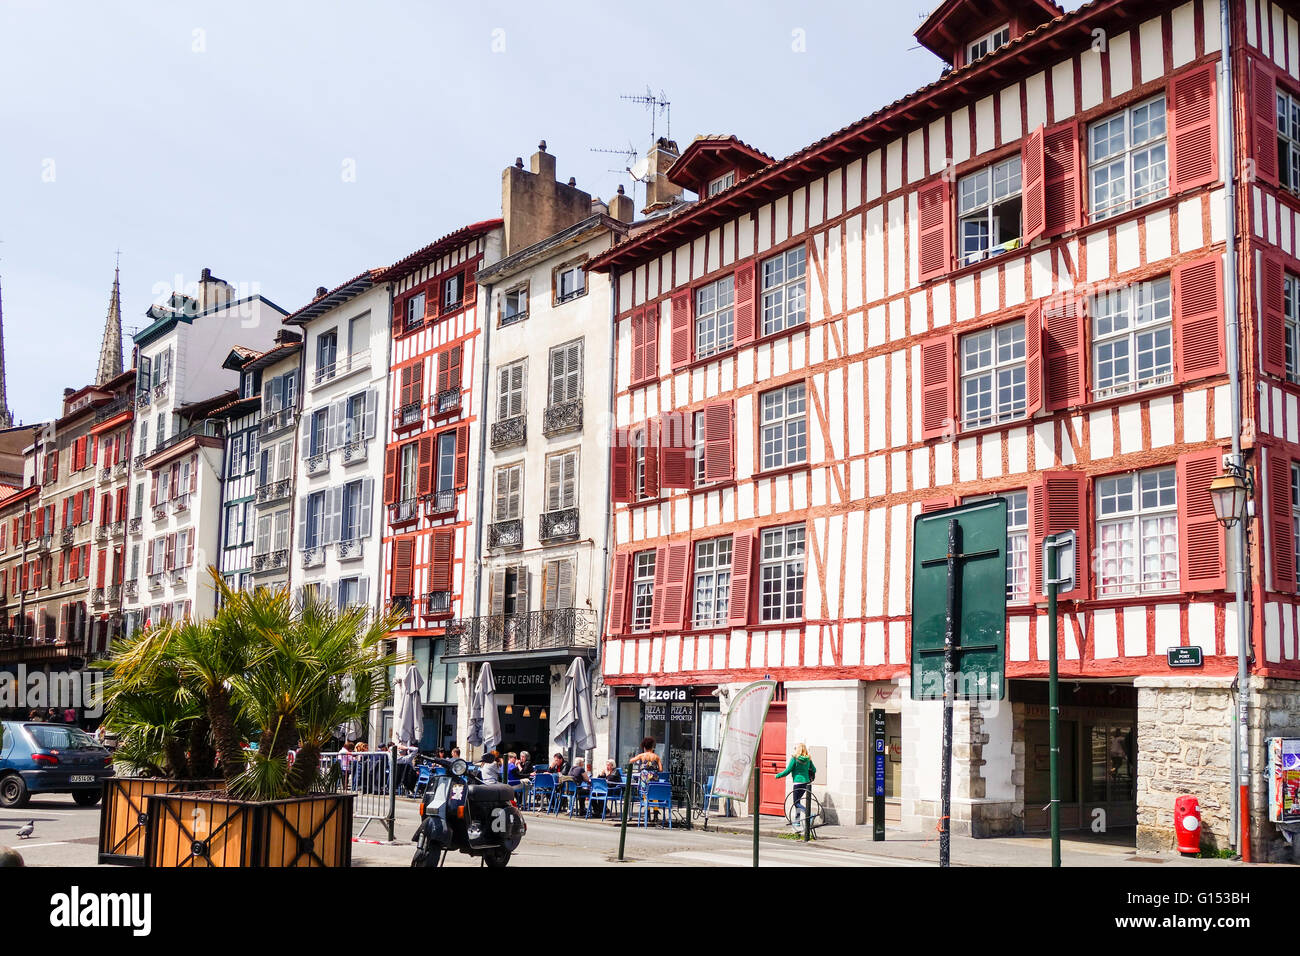 Grand Bayonne, Street view with ancient buildings in Basque, French architecture, Bayonne, France. - Stock Image